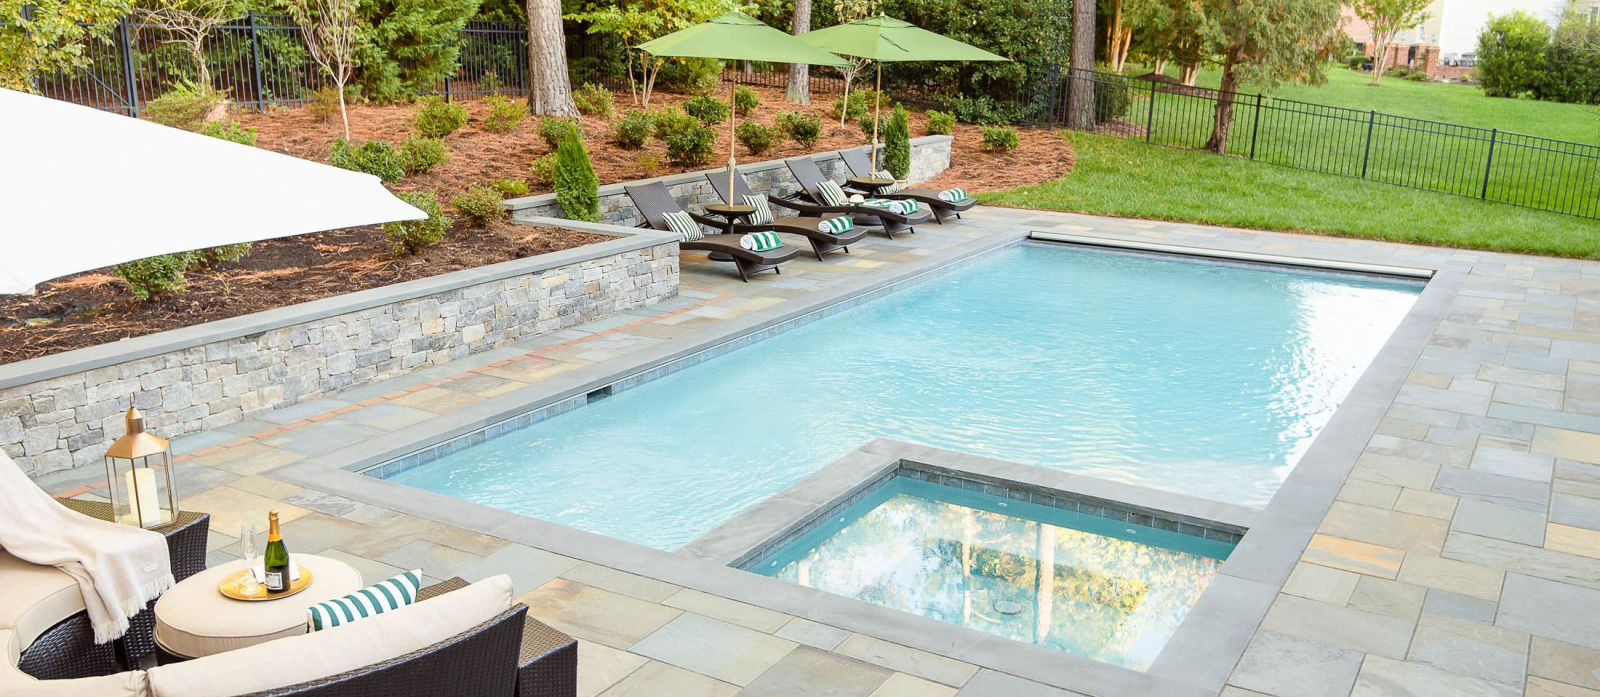 Paver patio with fire pit and retaining wall